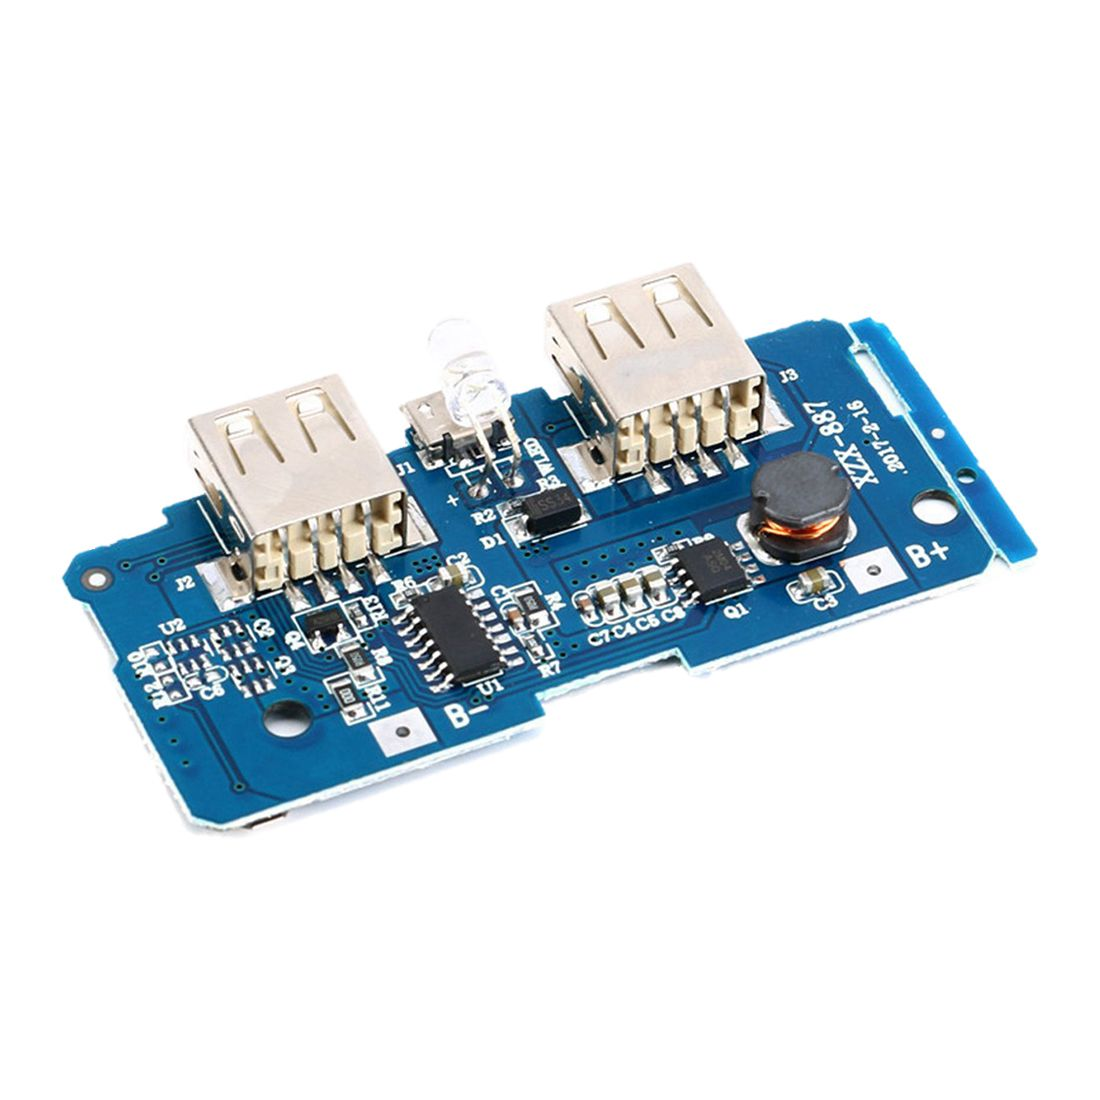 HFES 2 pcs Dual Micro-USB 3.7v to 5V 2A Mobile Power Bank DIY 18650 Lithium Battery Charger PCB Board Boost Step Up Module